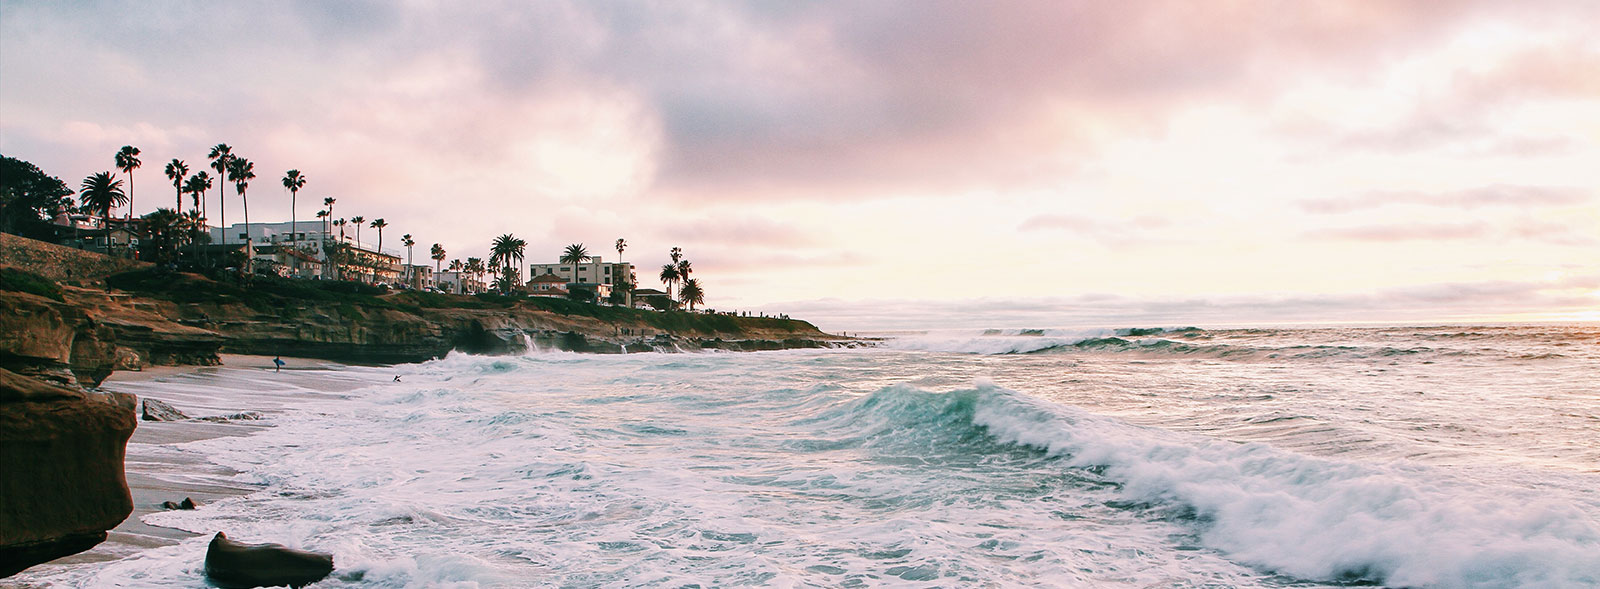 Waves breaking on the La Jolla Shores coast during sunset